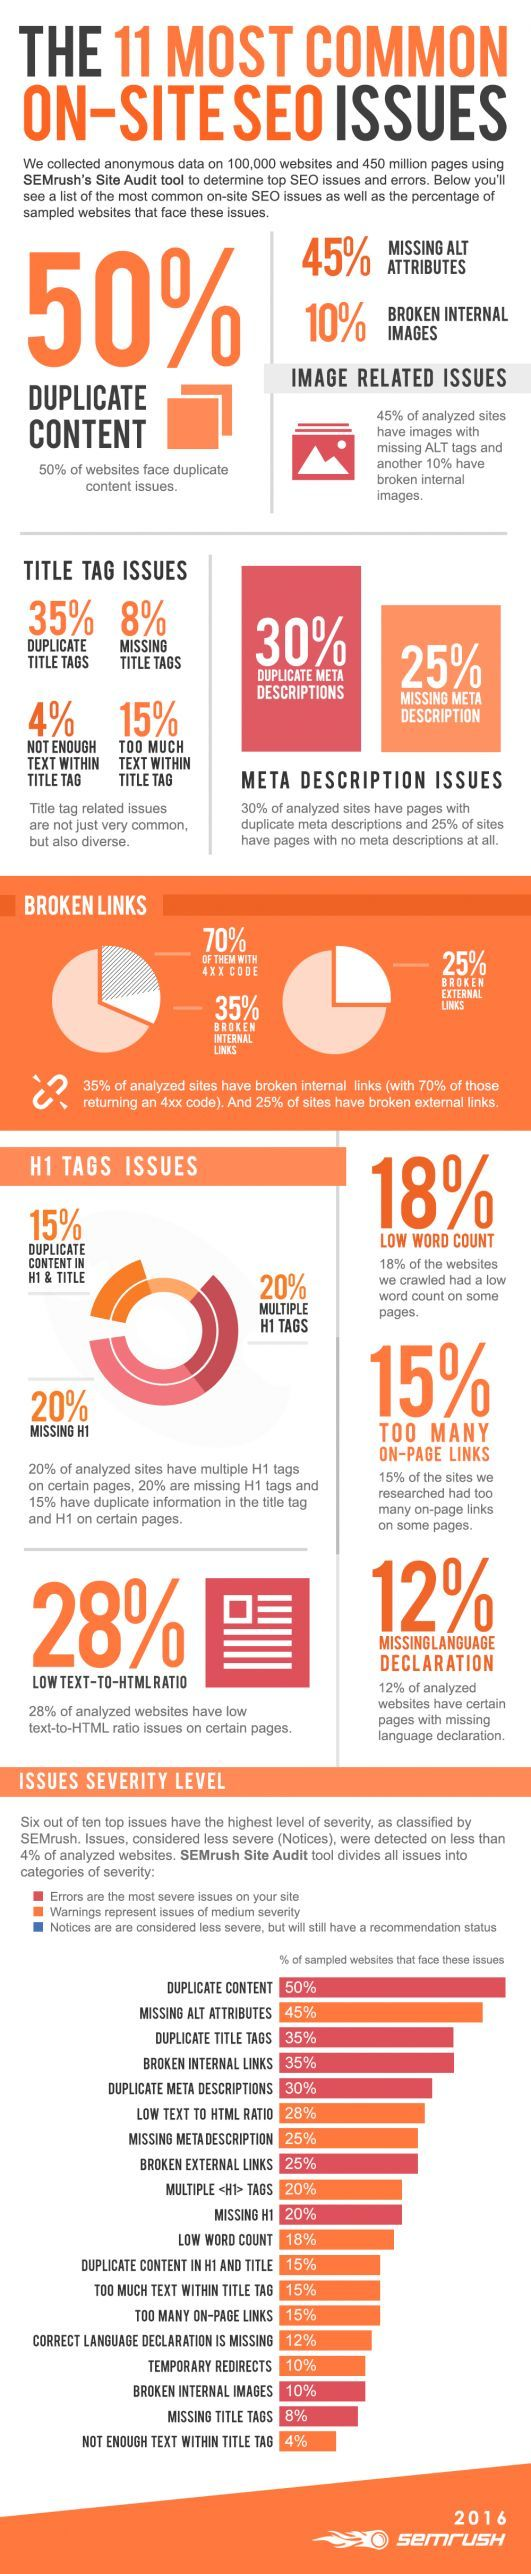 Infographic image of the 11 common on site seo issues